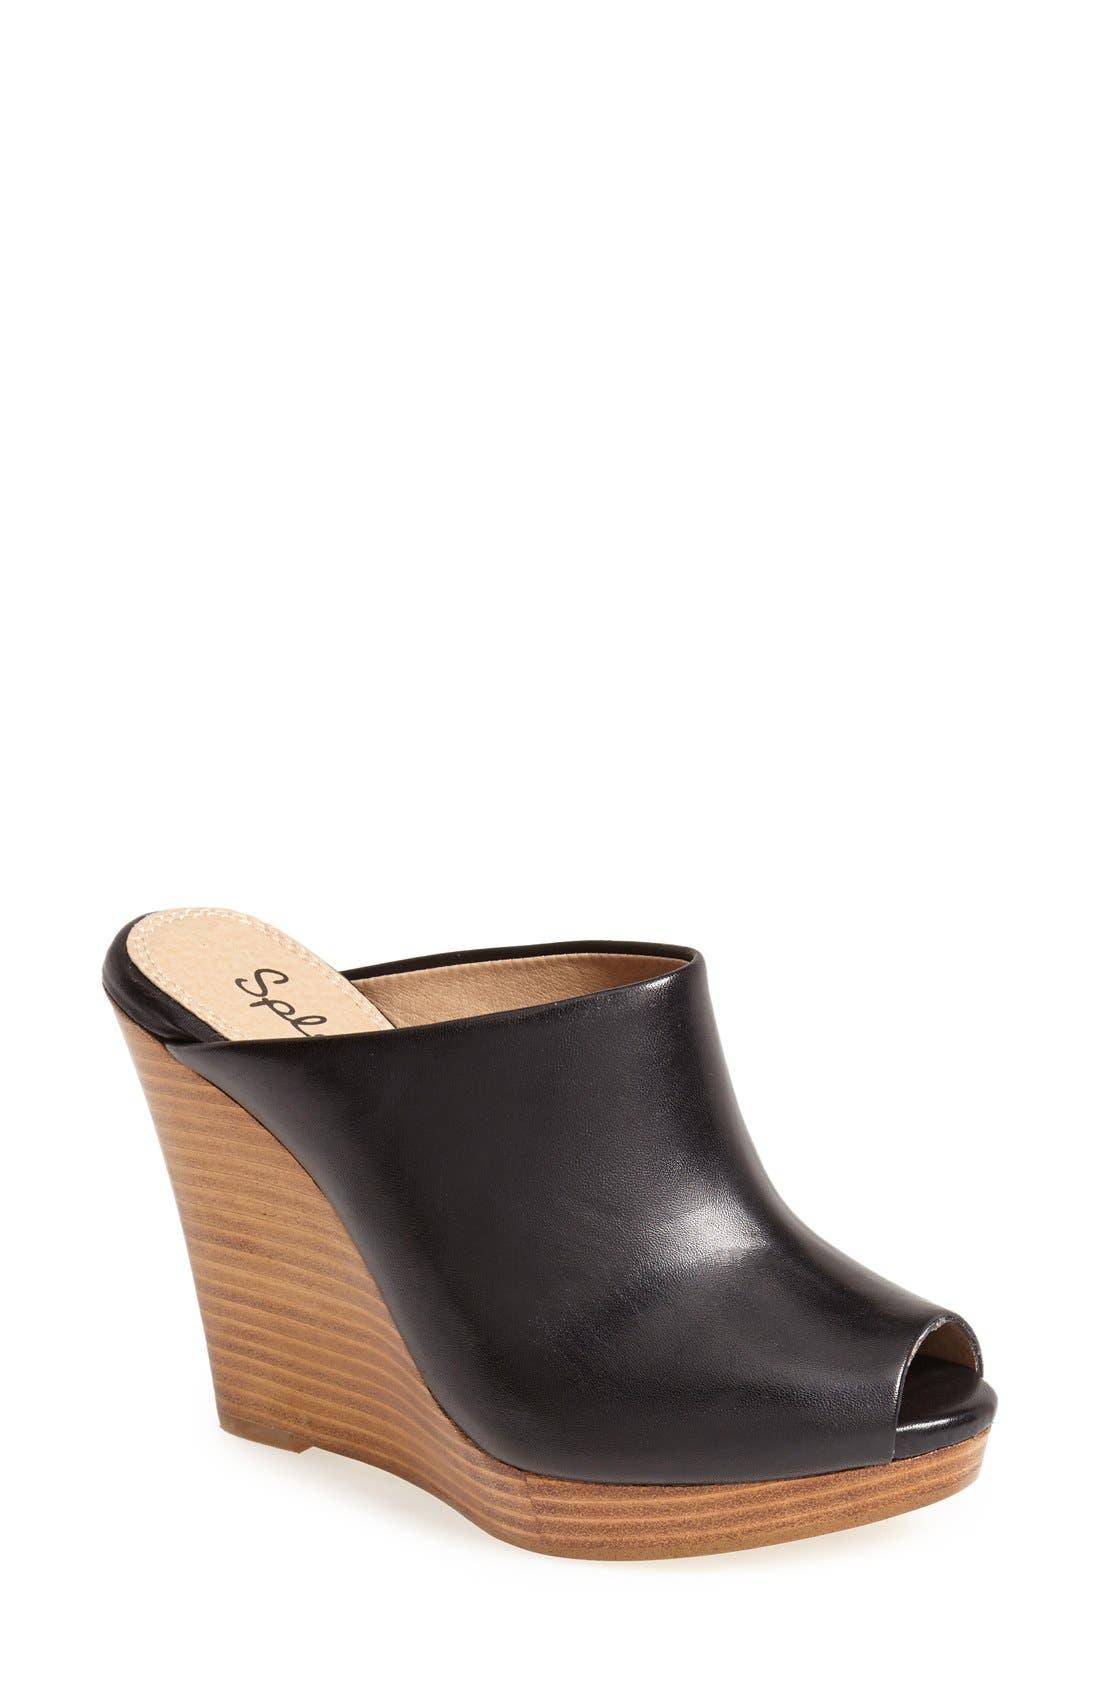 'Brooklin' Open Toe Mule,                         Main,                         color, Black Soft Vintage Leather